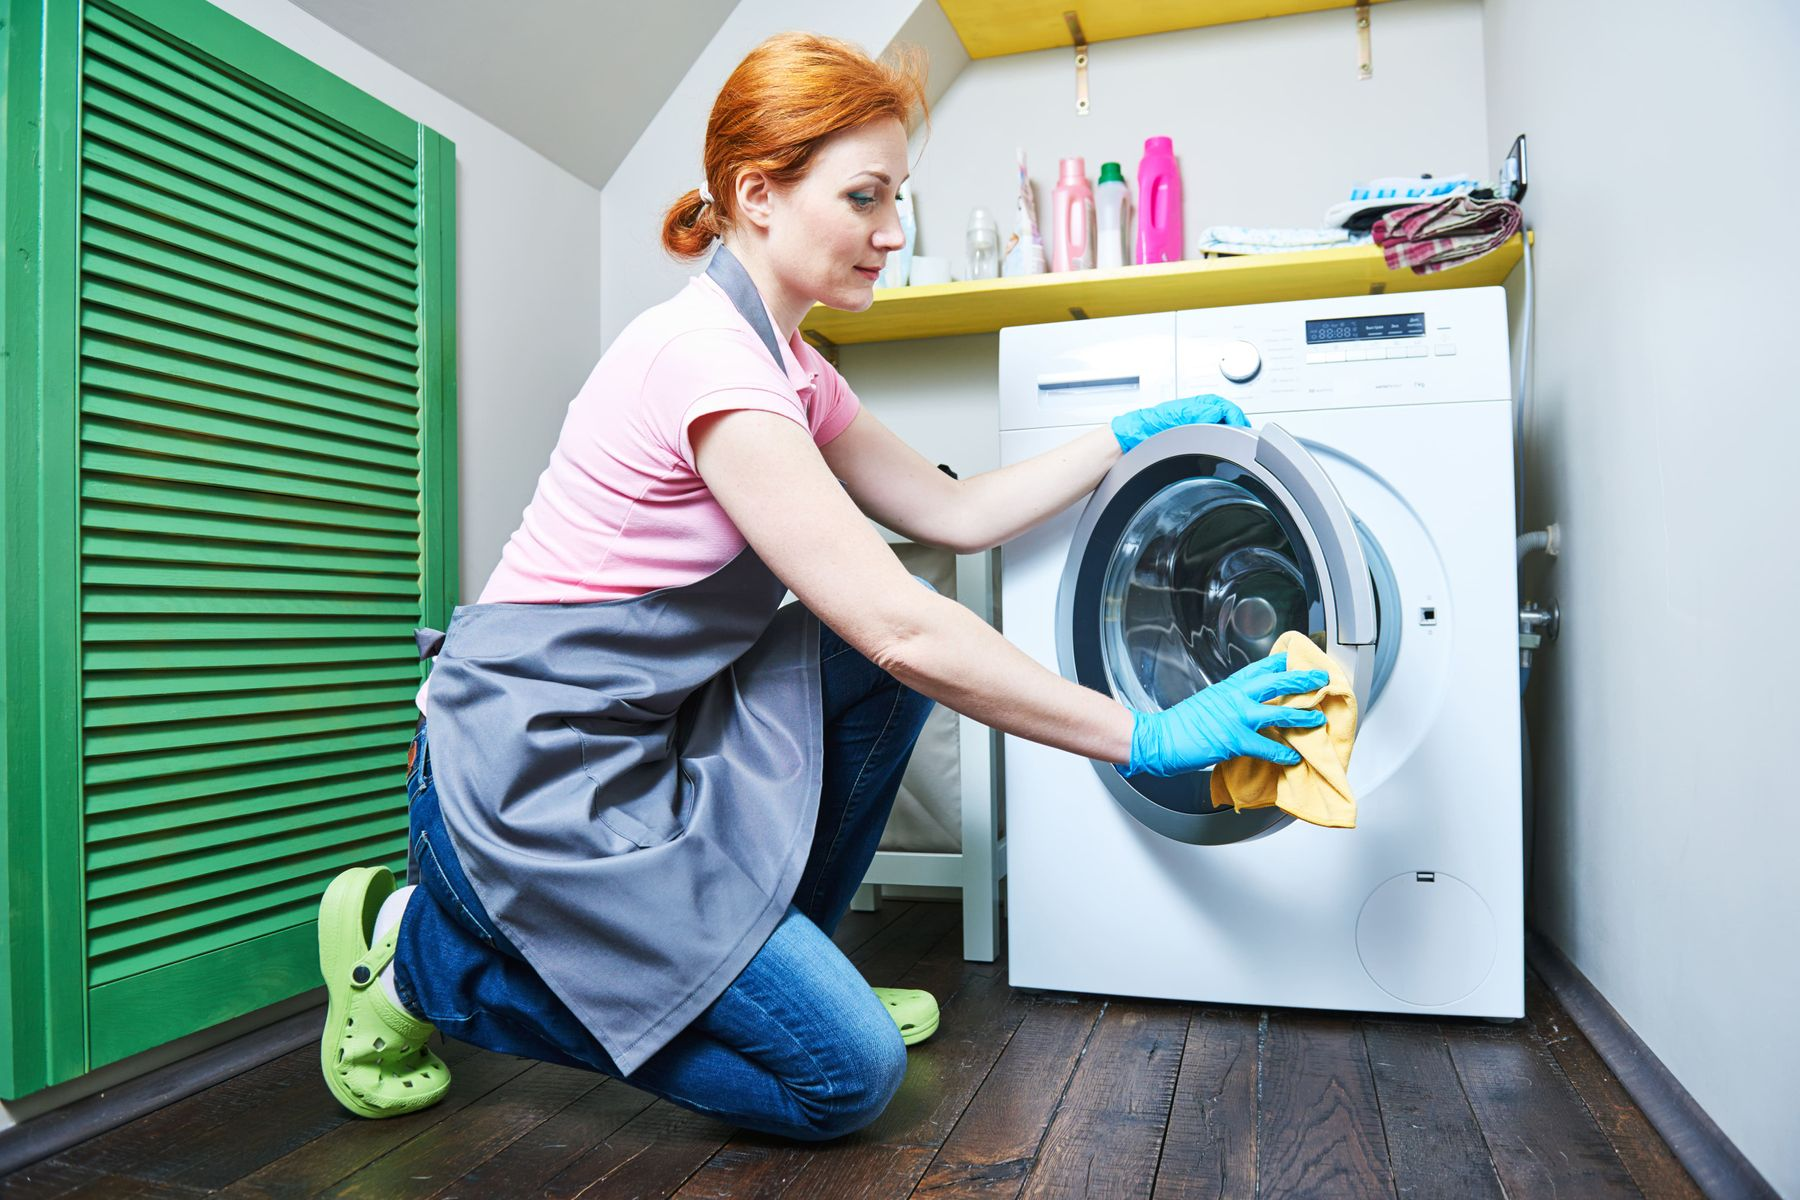 does-your-washing-machine-smell-bad-use-these-simple-household-items-to-easily-clean-your-washing-machine